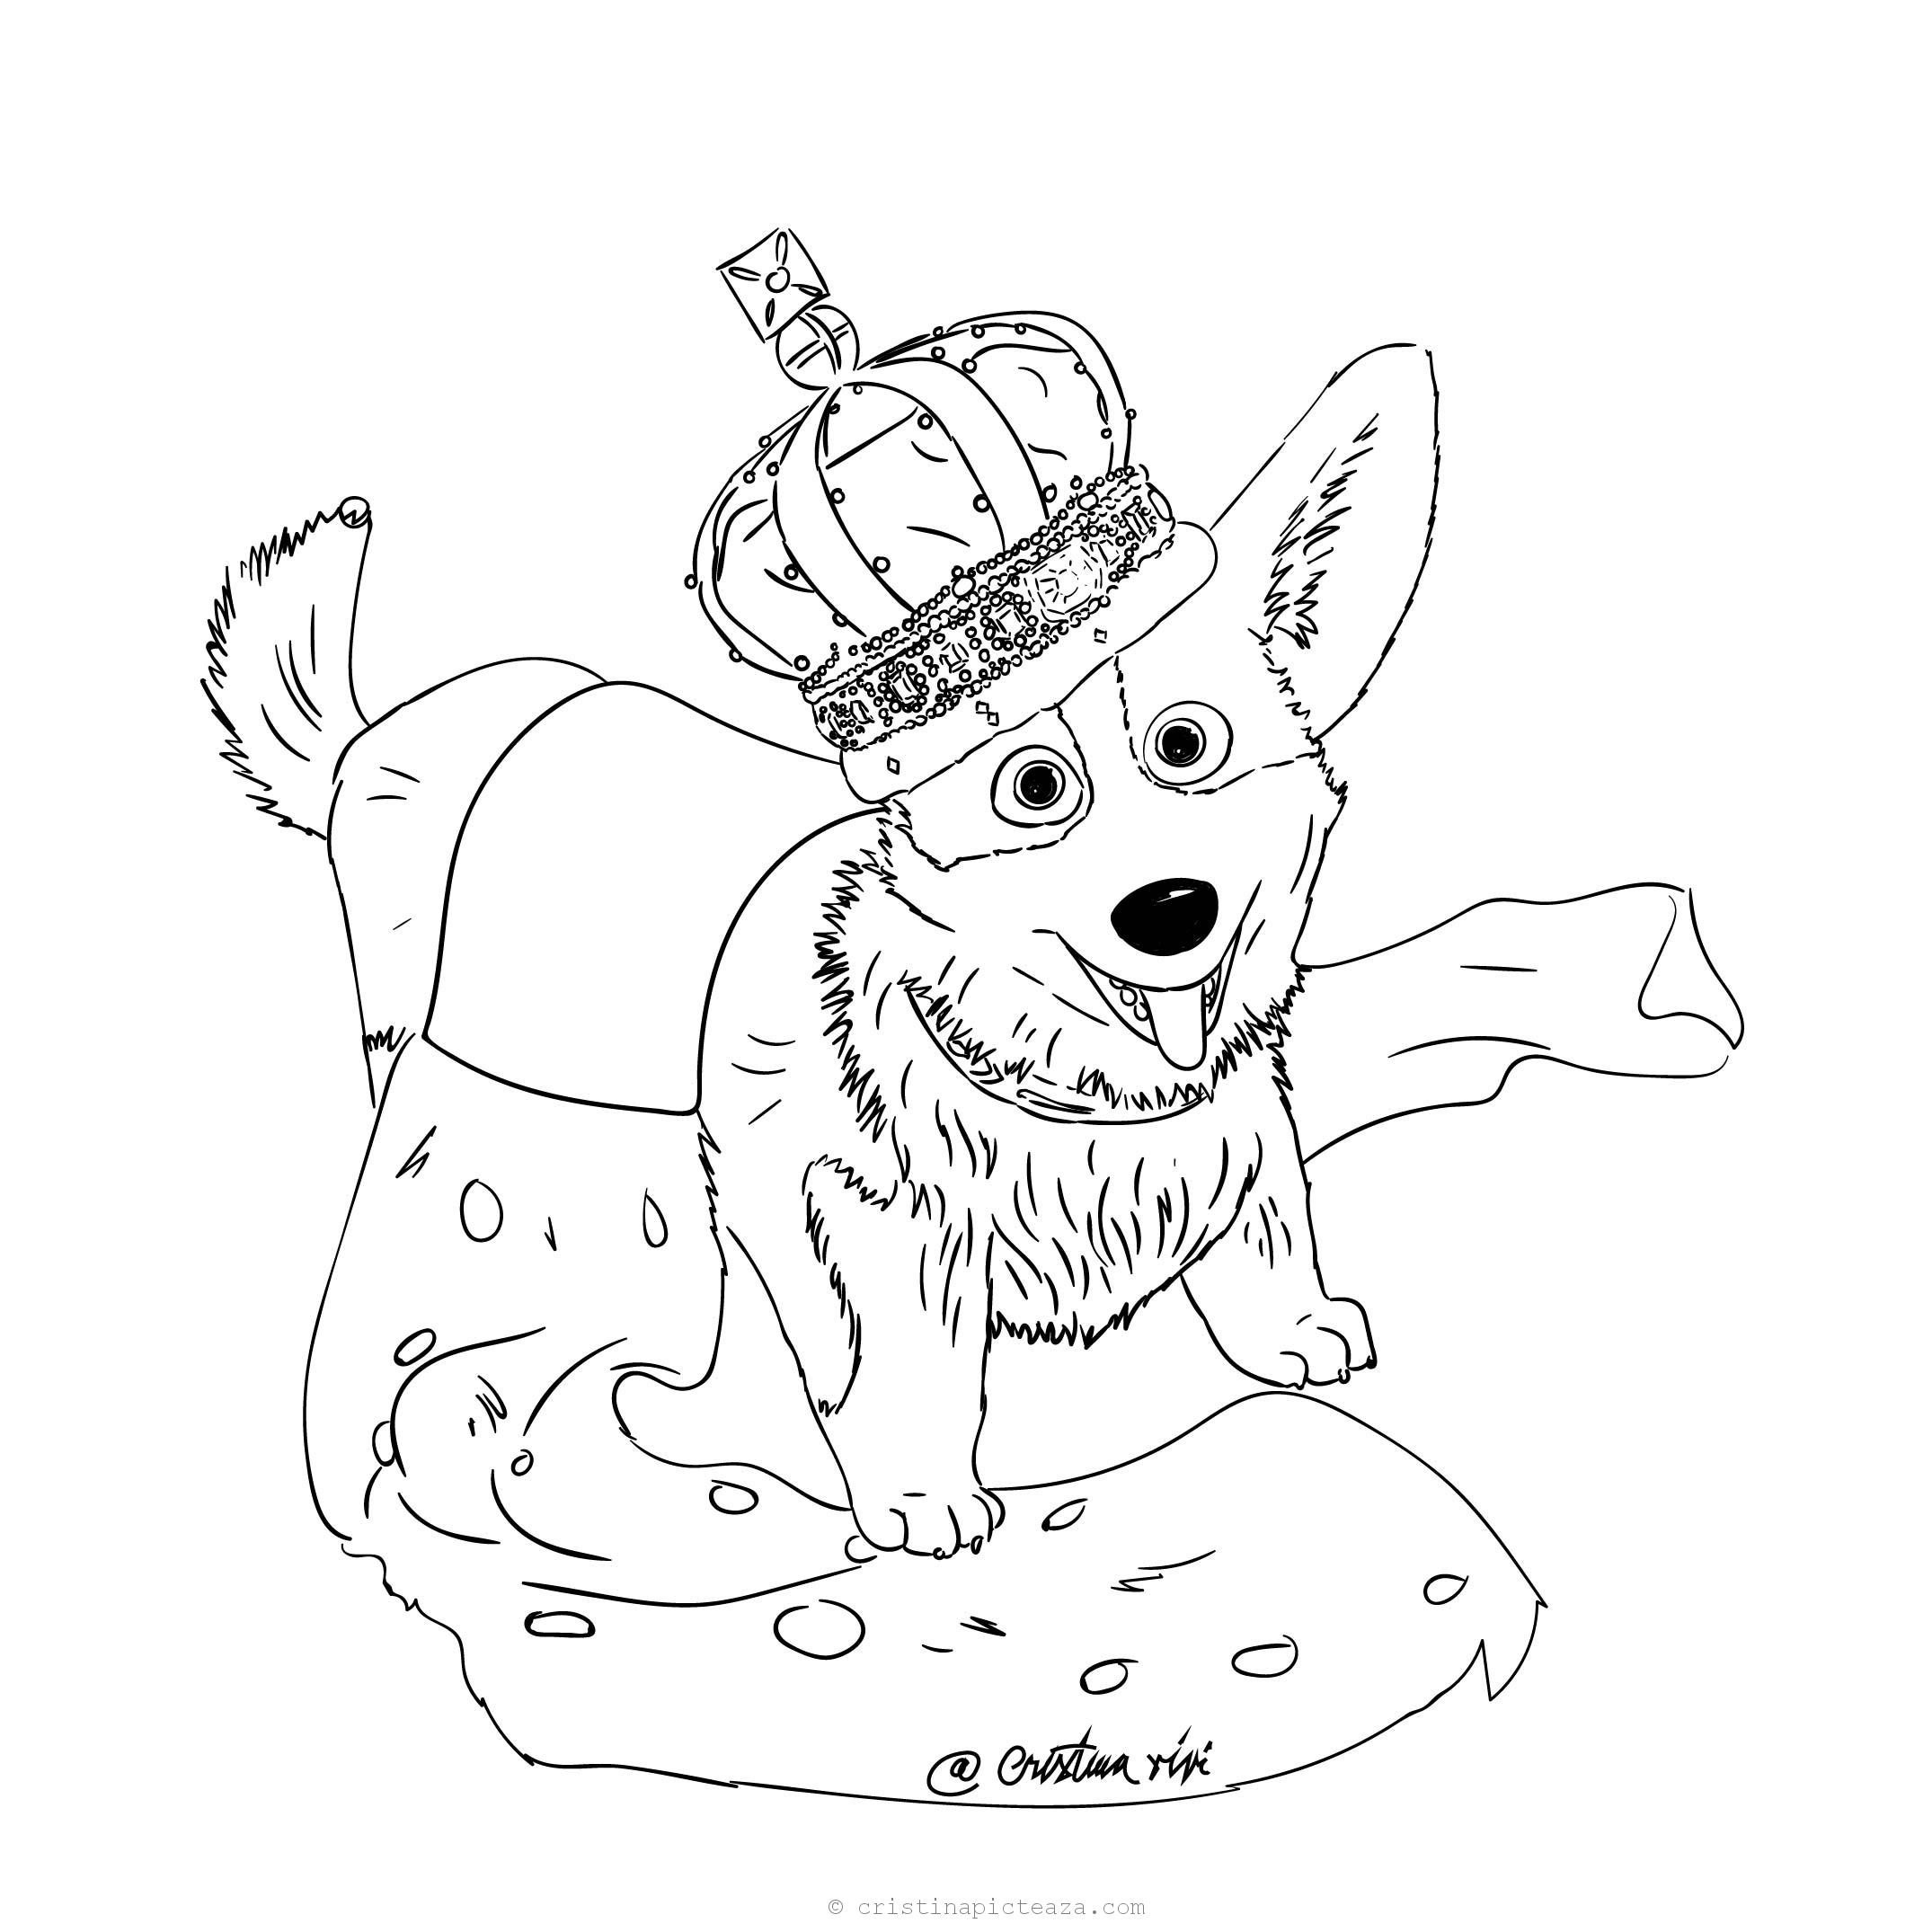 The Queen's Corgi Coloring Pages – Dog coloring pages